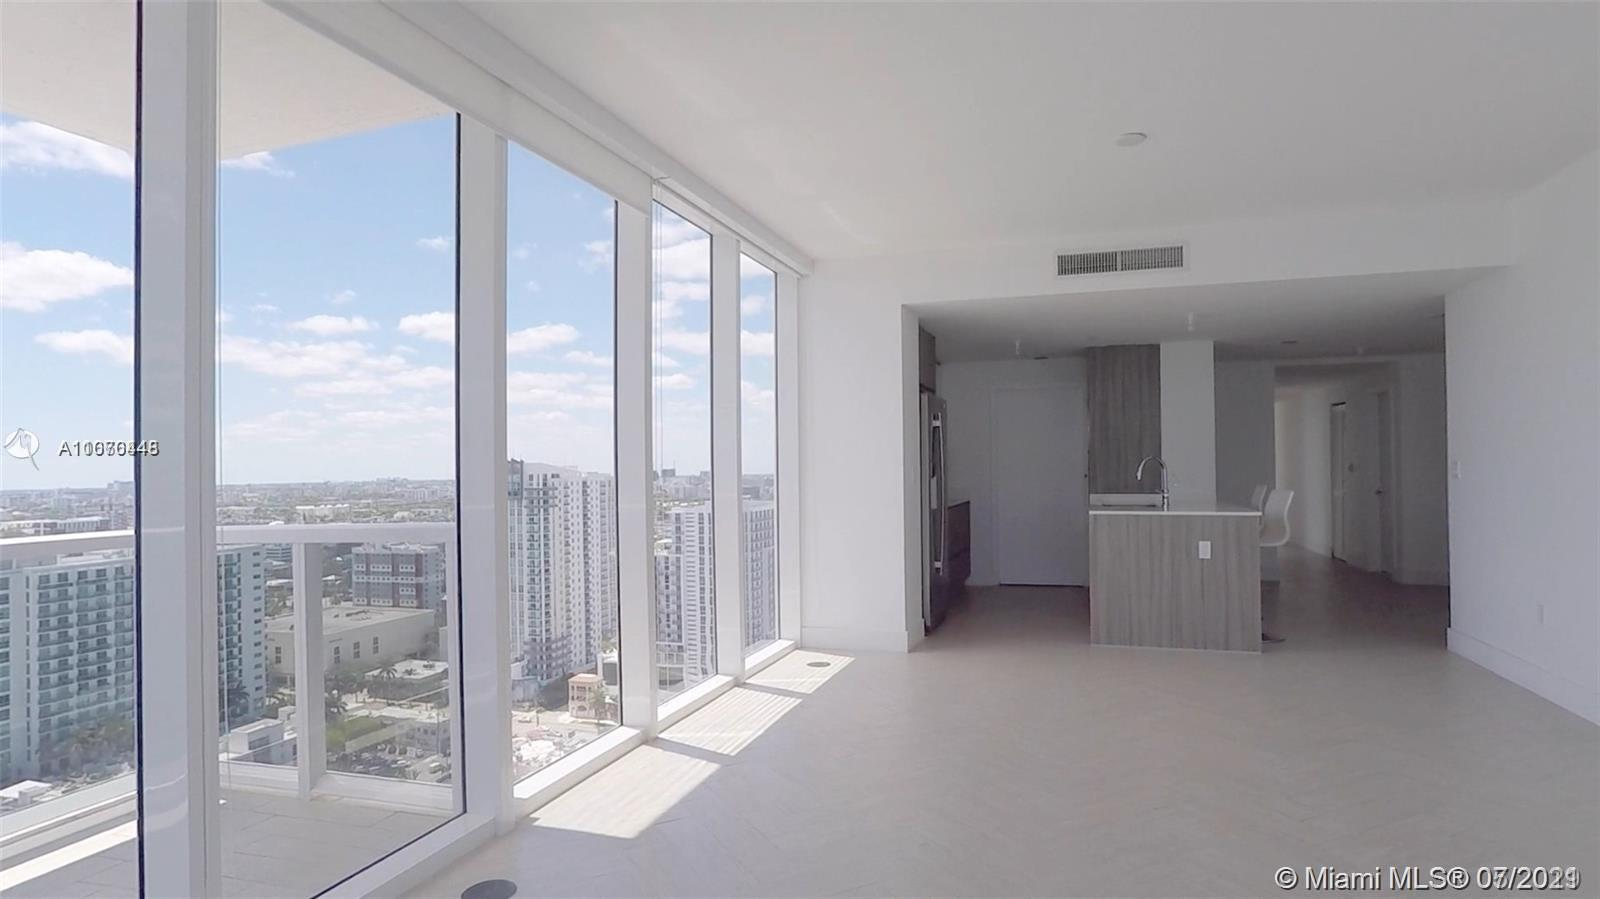 BEST PRICE IN EDGEWATER! Direct bay views from this 3 Bed/2.5 Bath. Expansive floor plans, panoramic